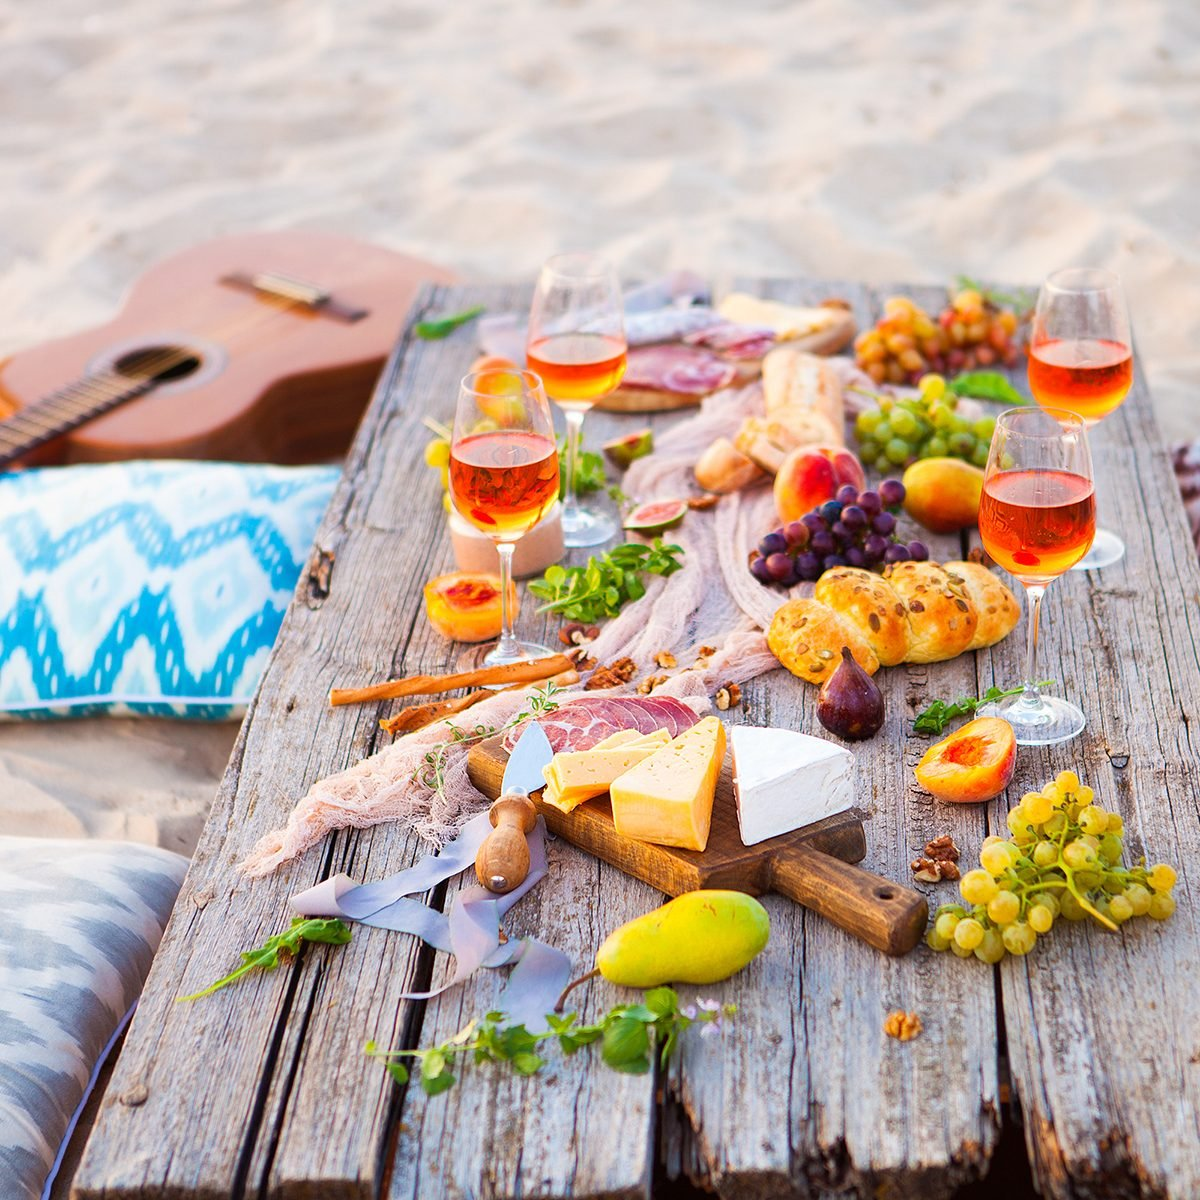 Picnic on the beach at sunset in the style of boho, food and drink